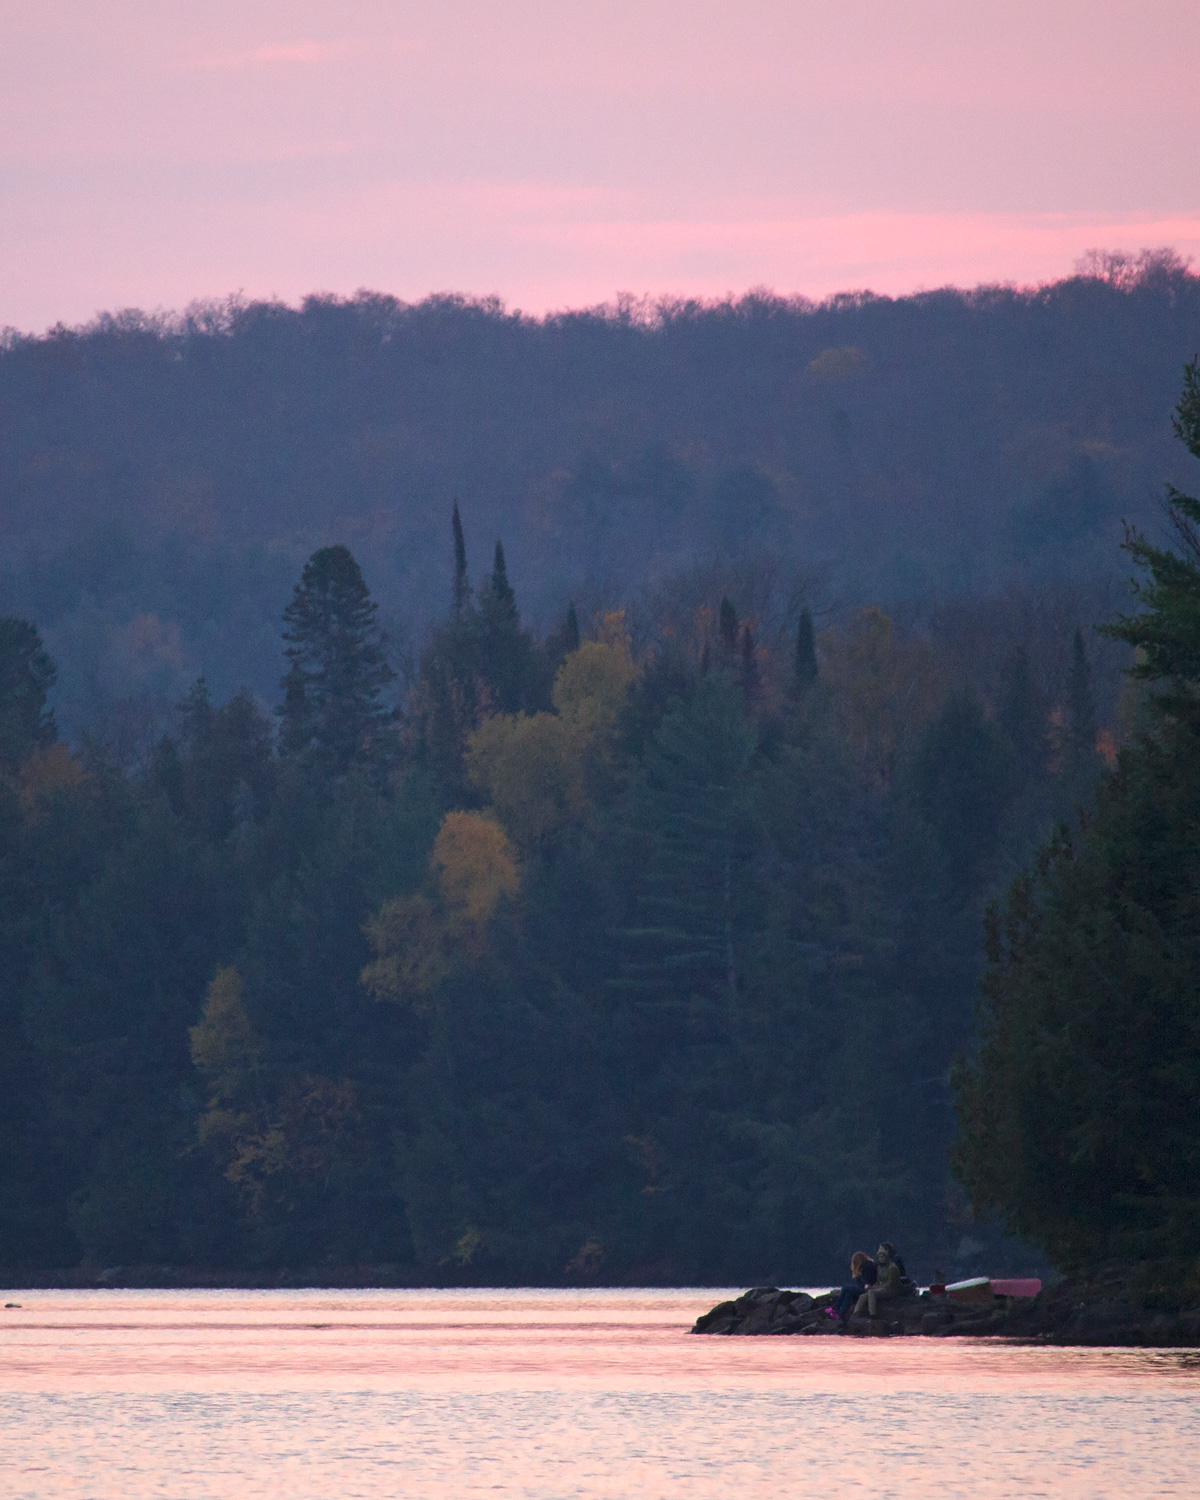 Pink skies during sunrise on Ragged Lake Thanksgiving October 2020 vertical photo